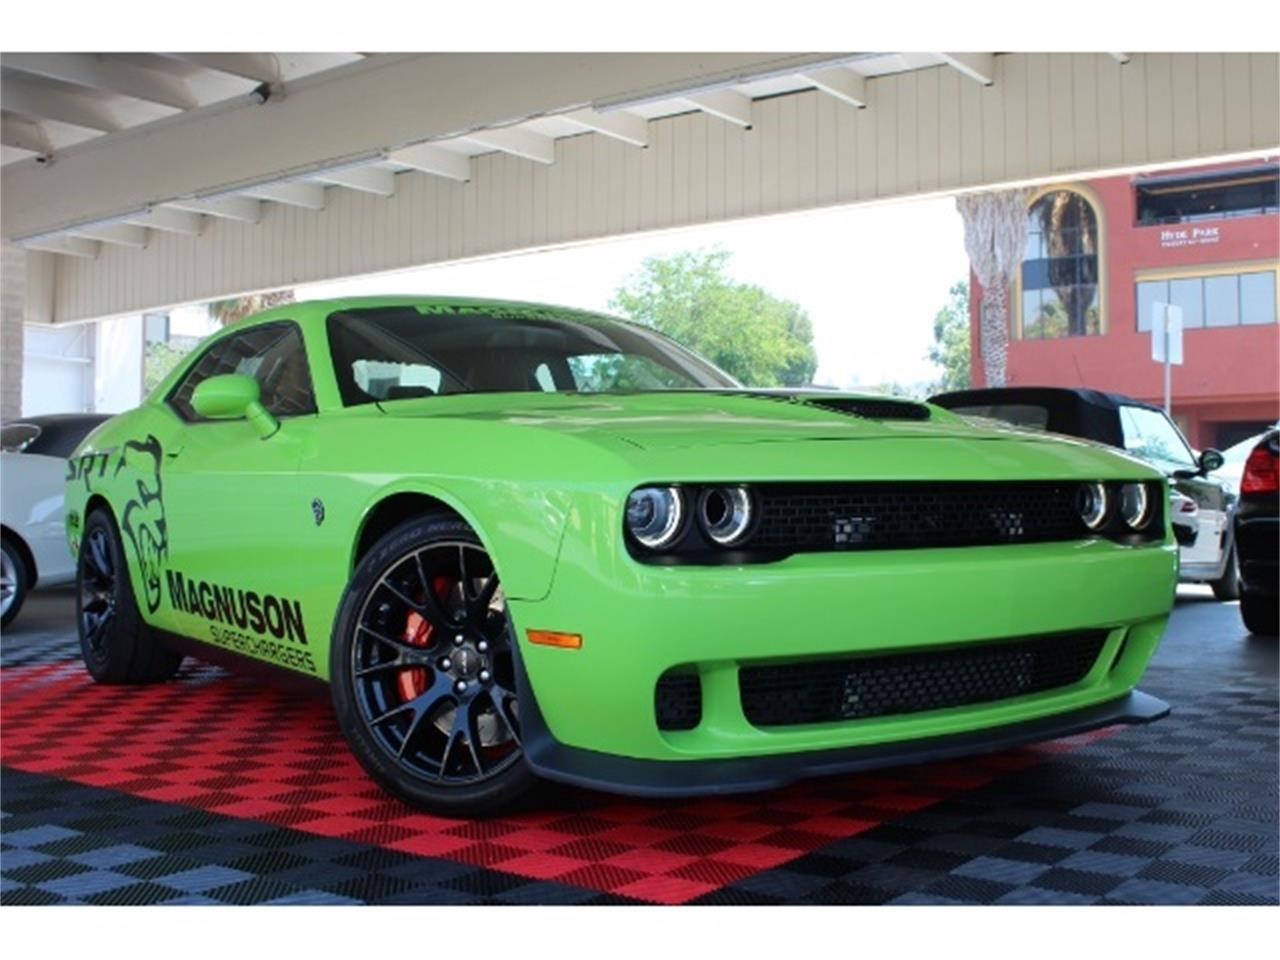 2015 Dodge Challenger Hellcat For Sale >> 2015 Dodge Challenger Srt Hellcat For Sale Classiccars Com Cc